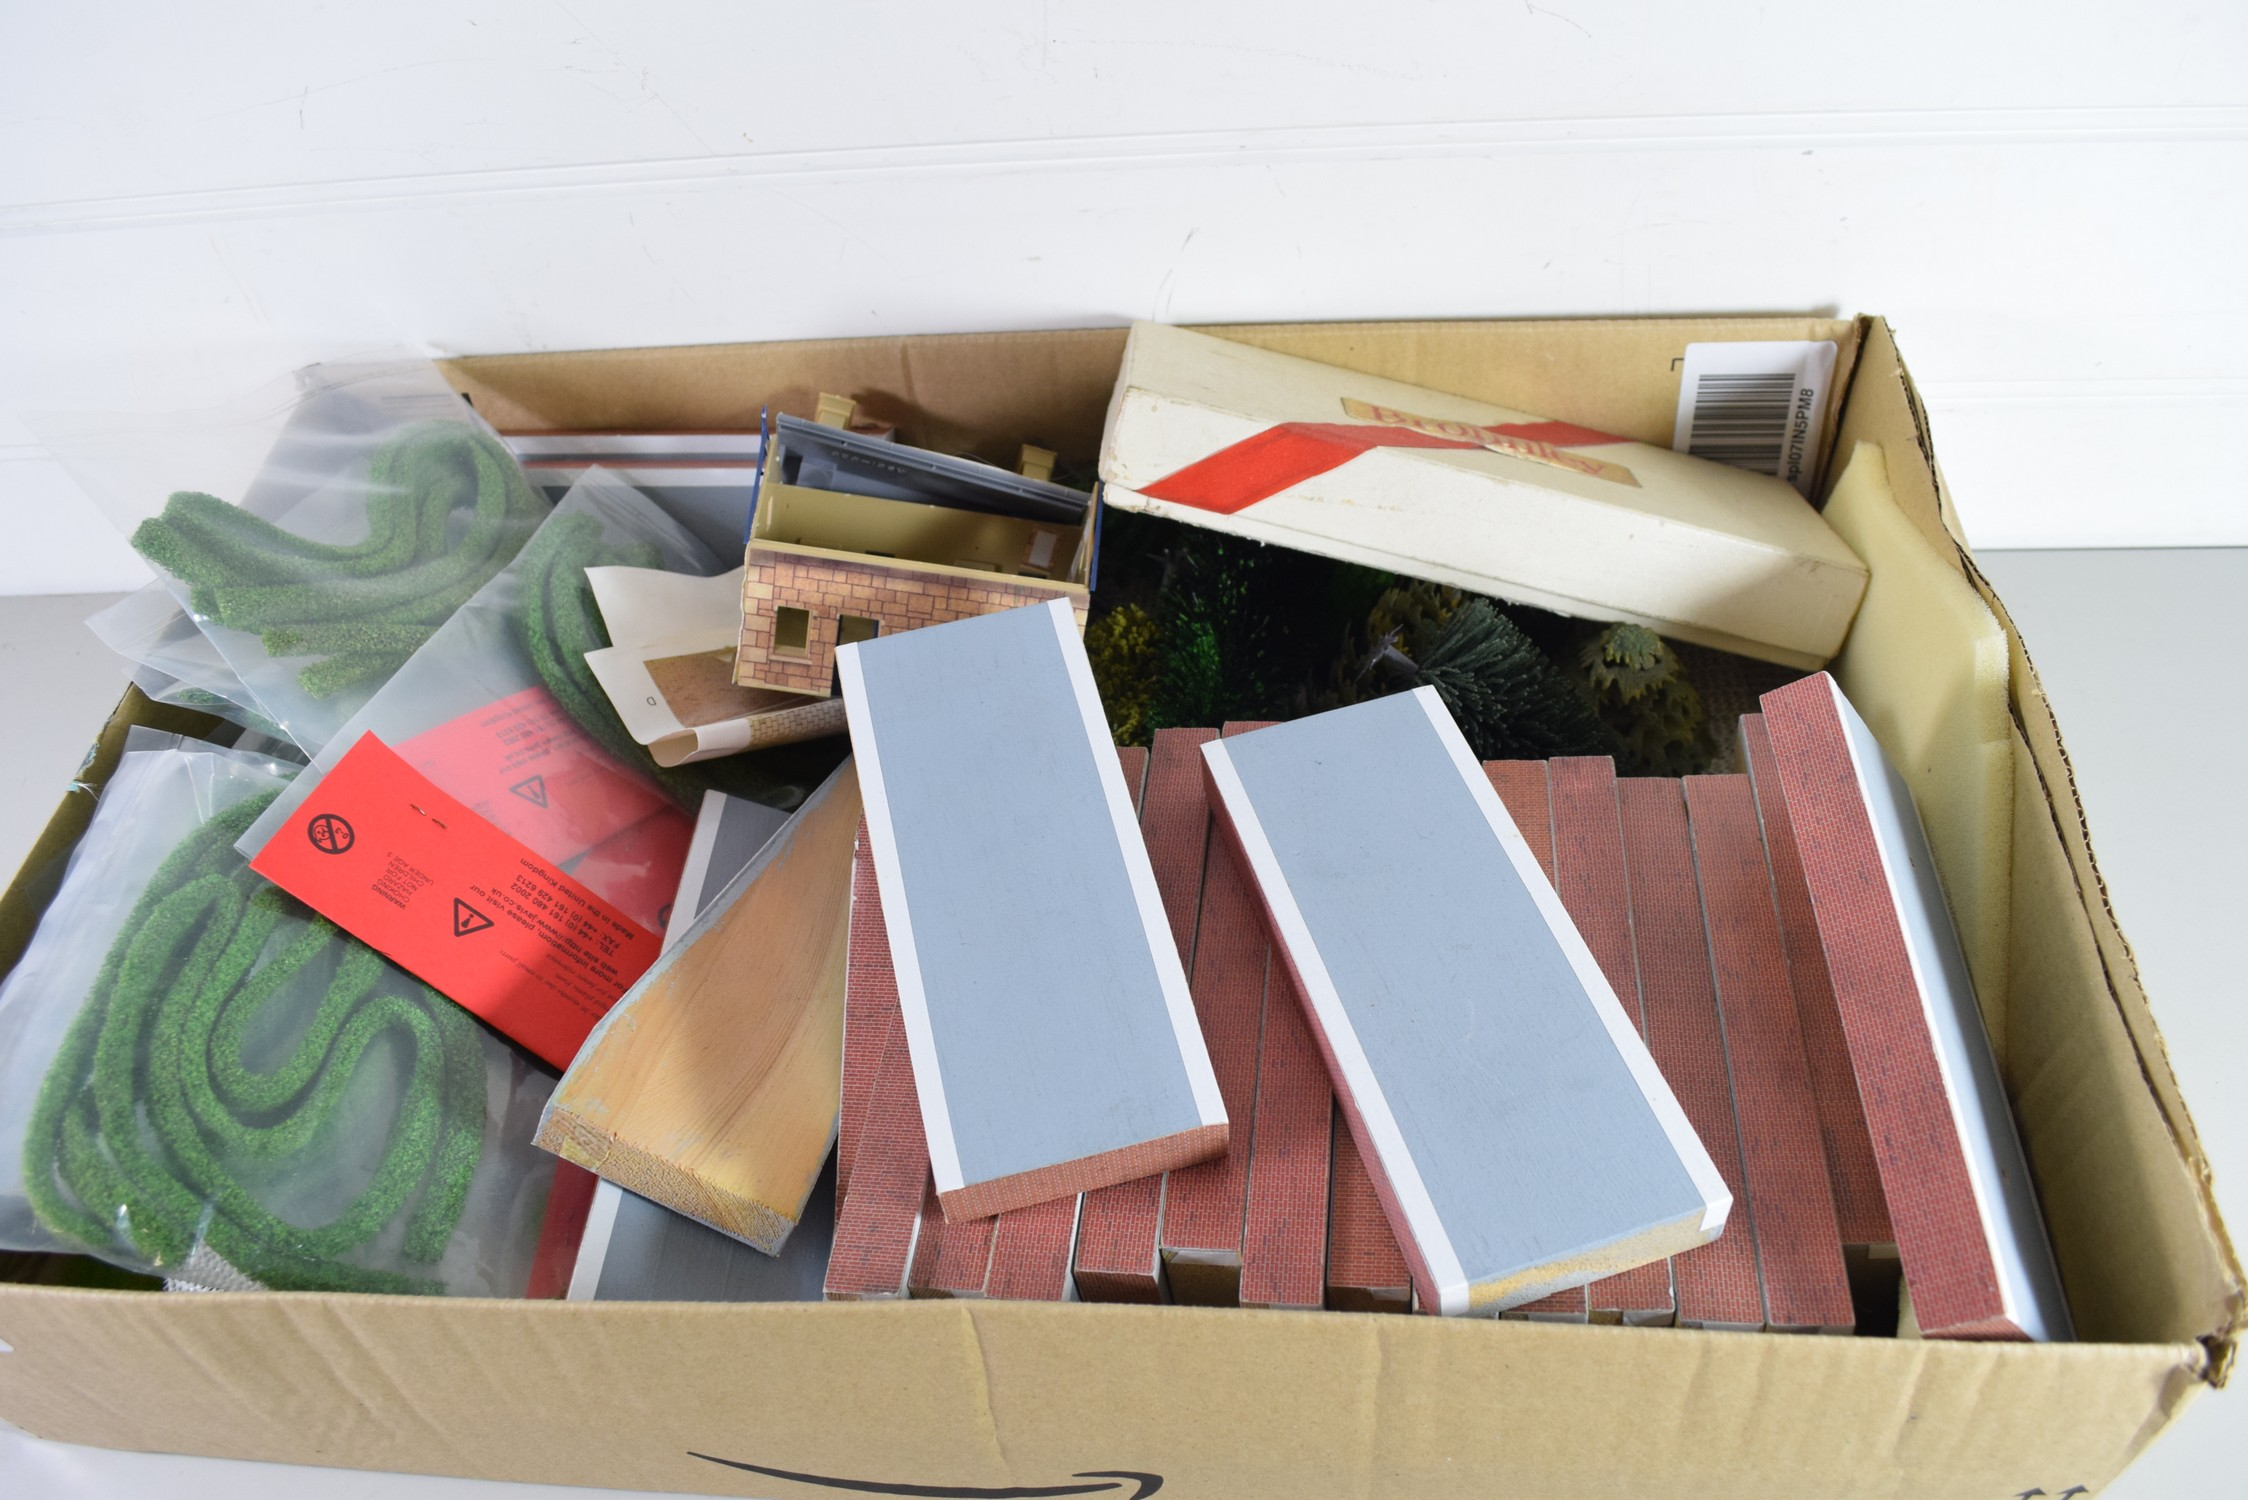 Box containing railway accessories, mainly scenery, wooden platforms etc